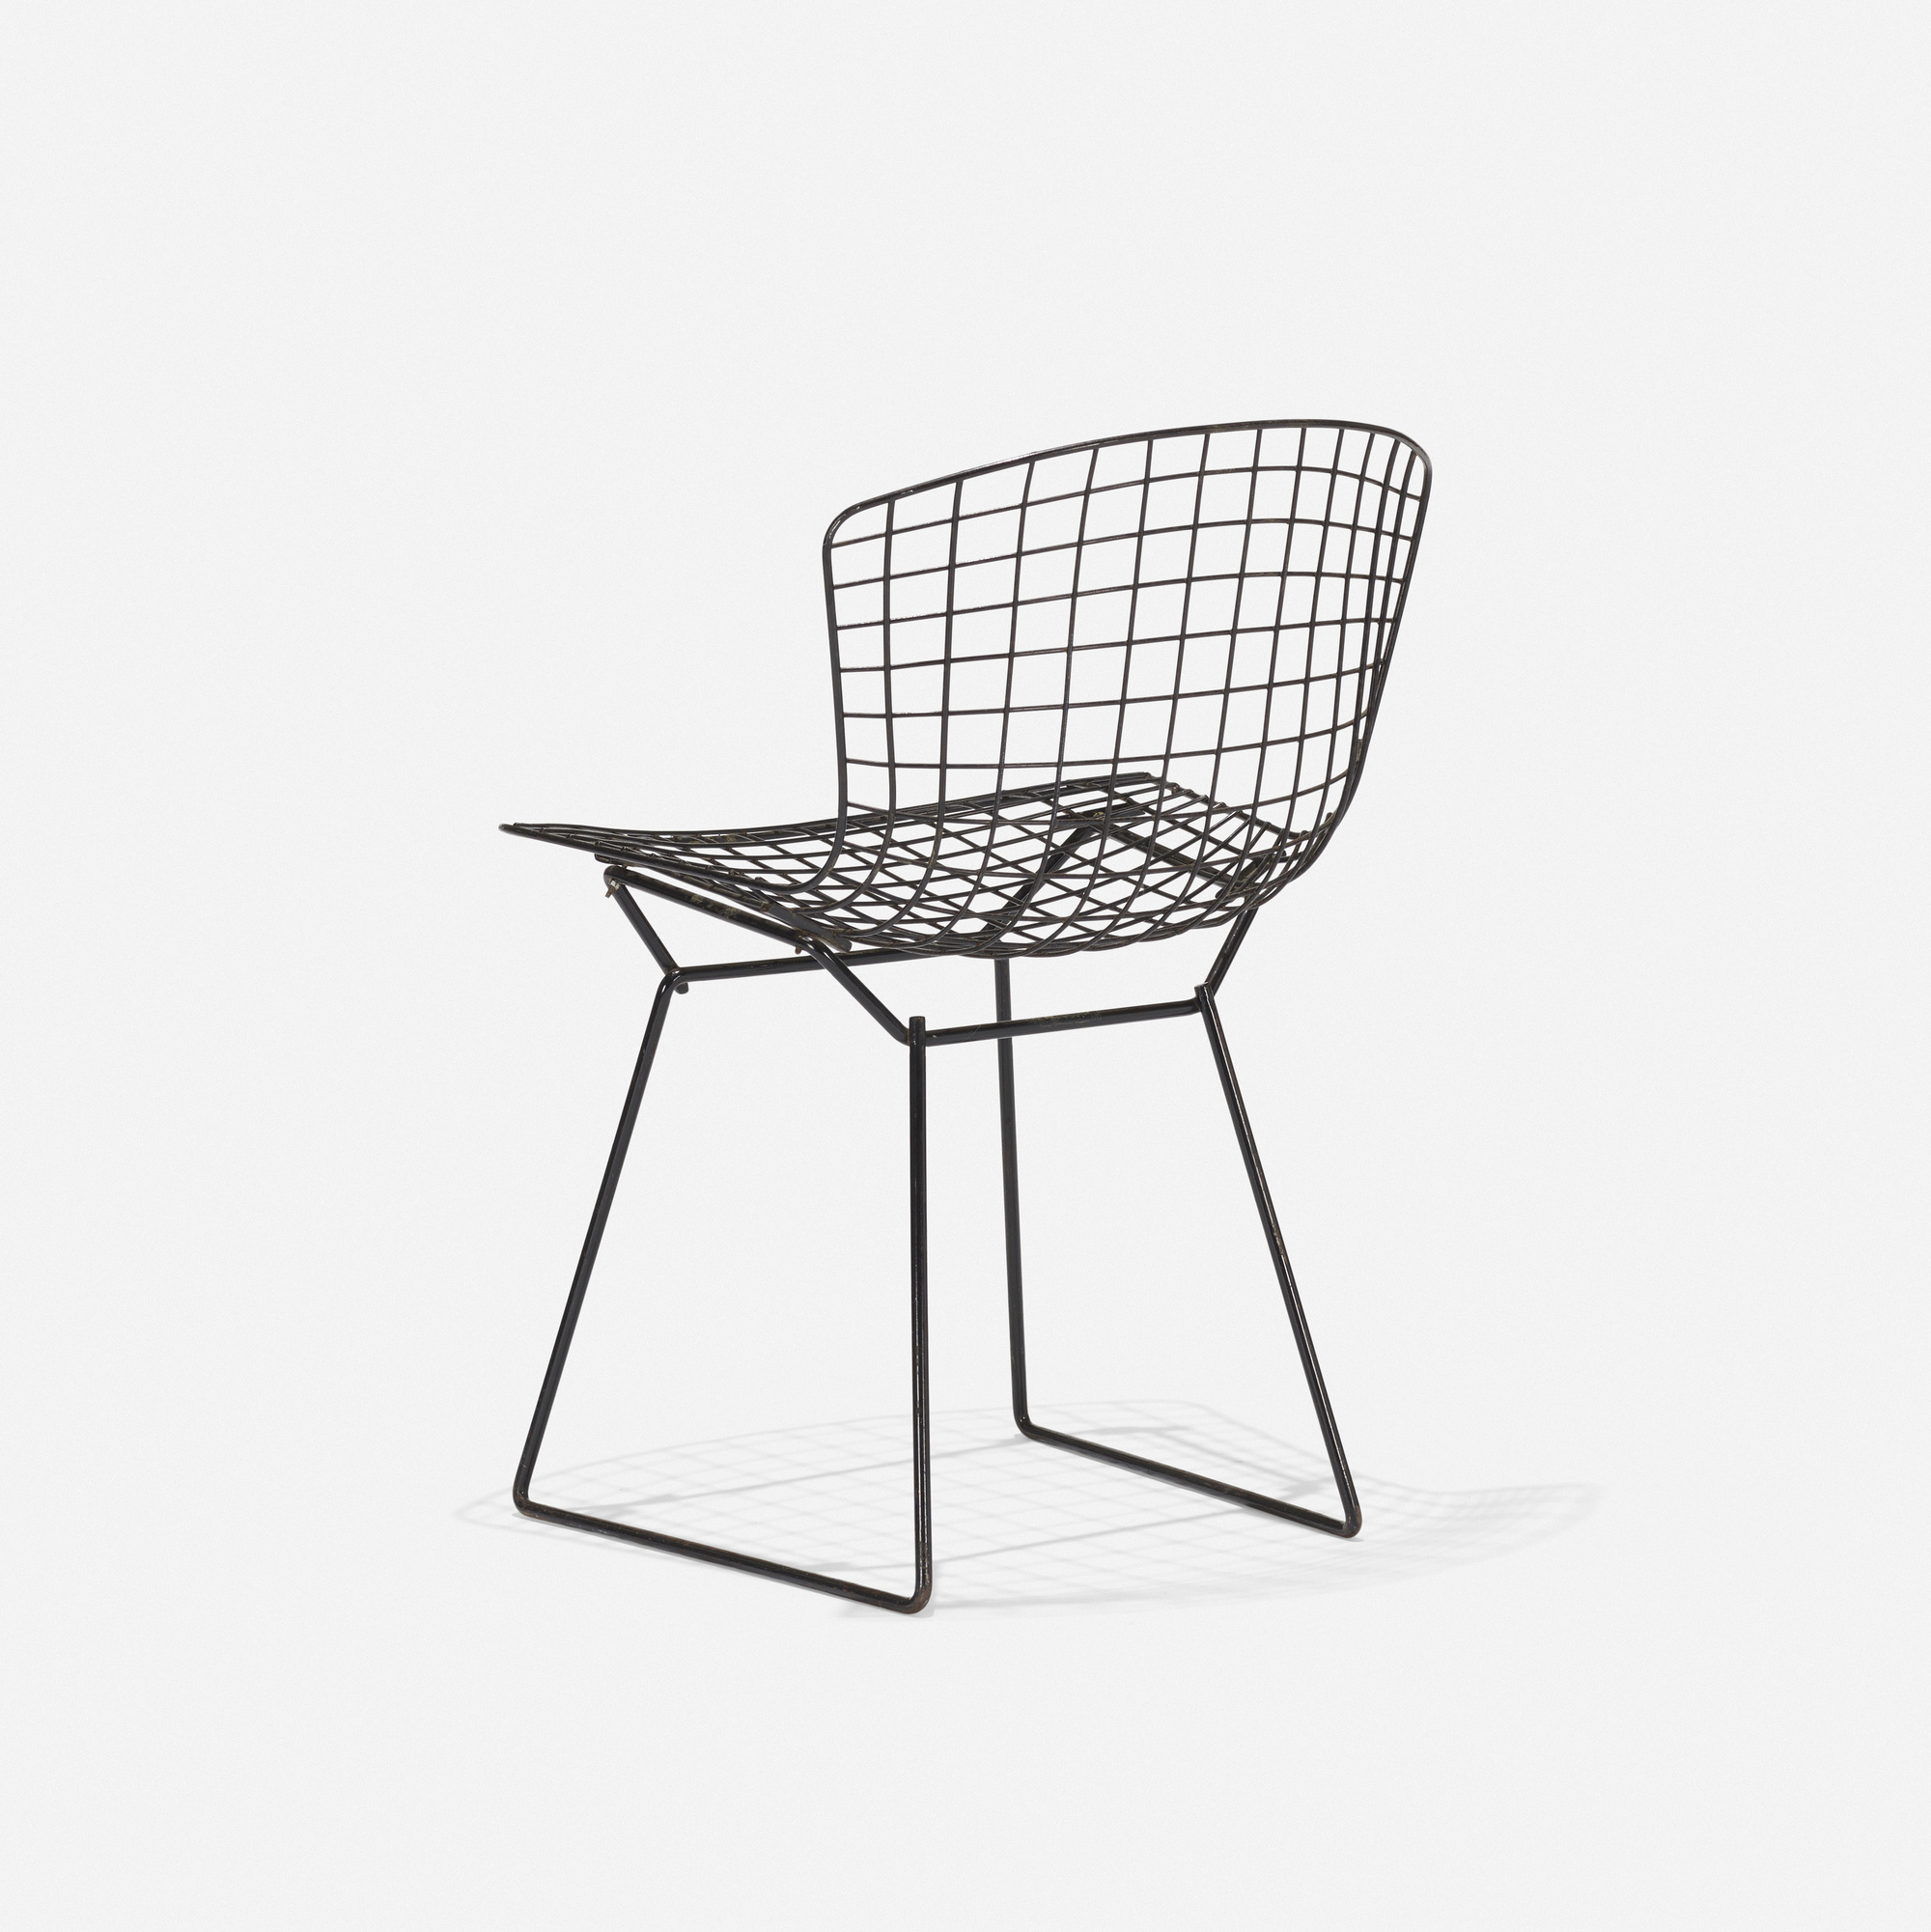 223: Harry Bertoia / chair (2 of 3)